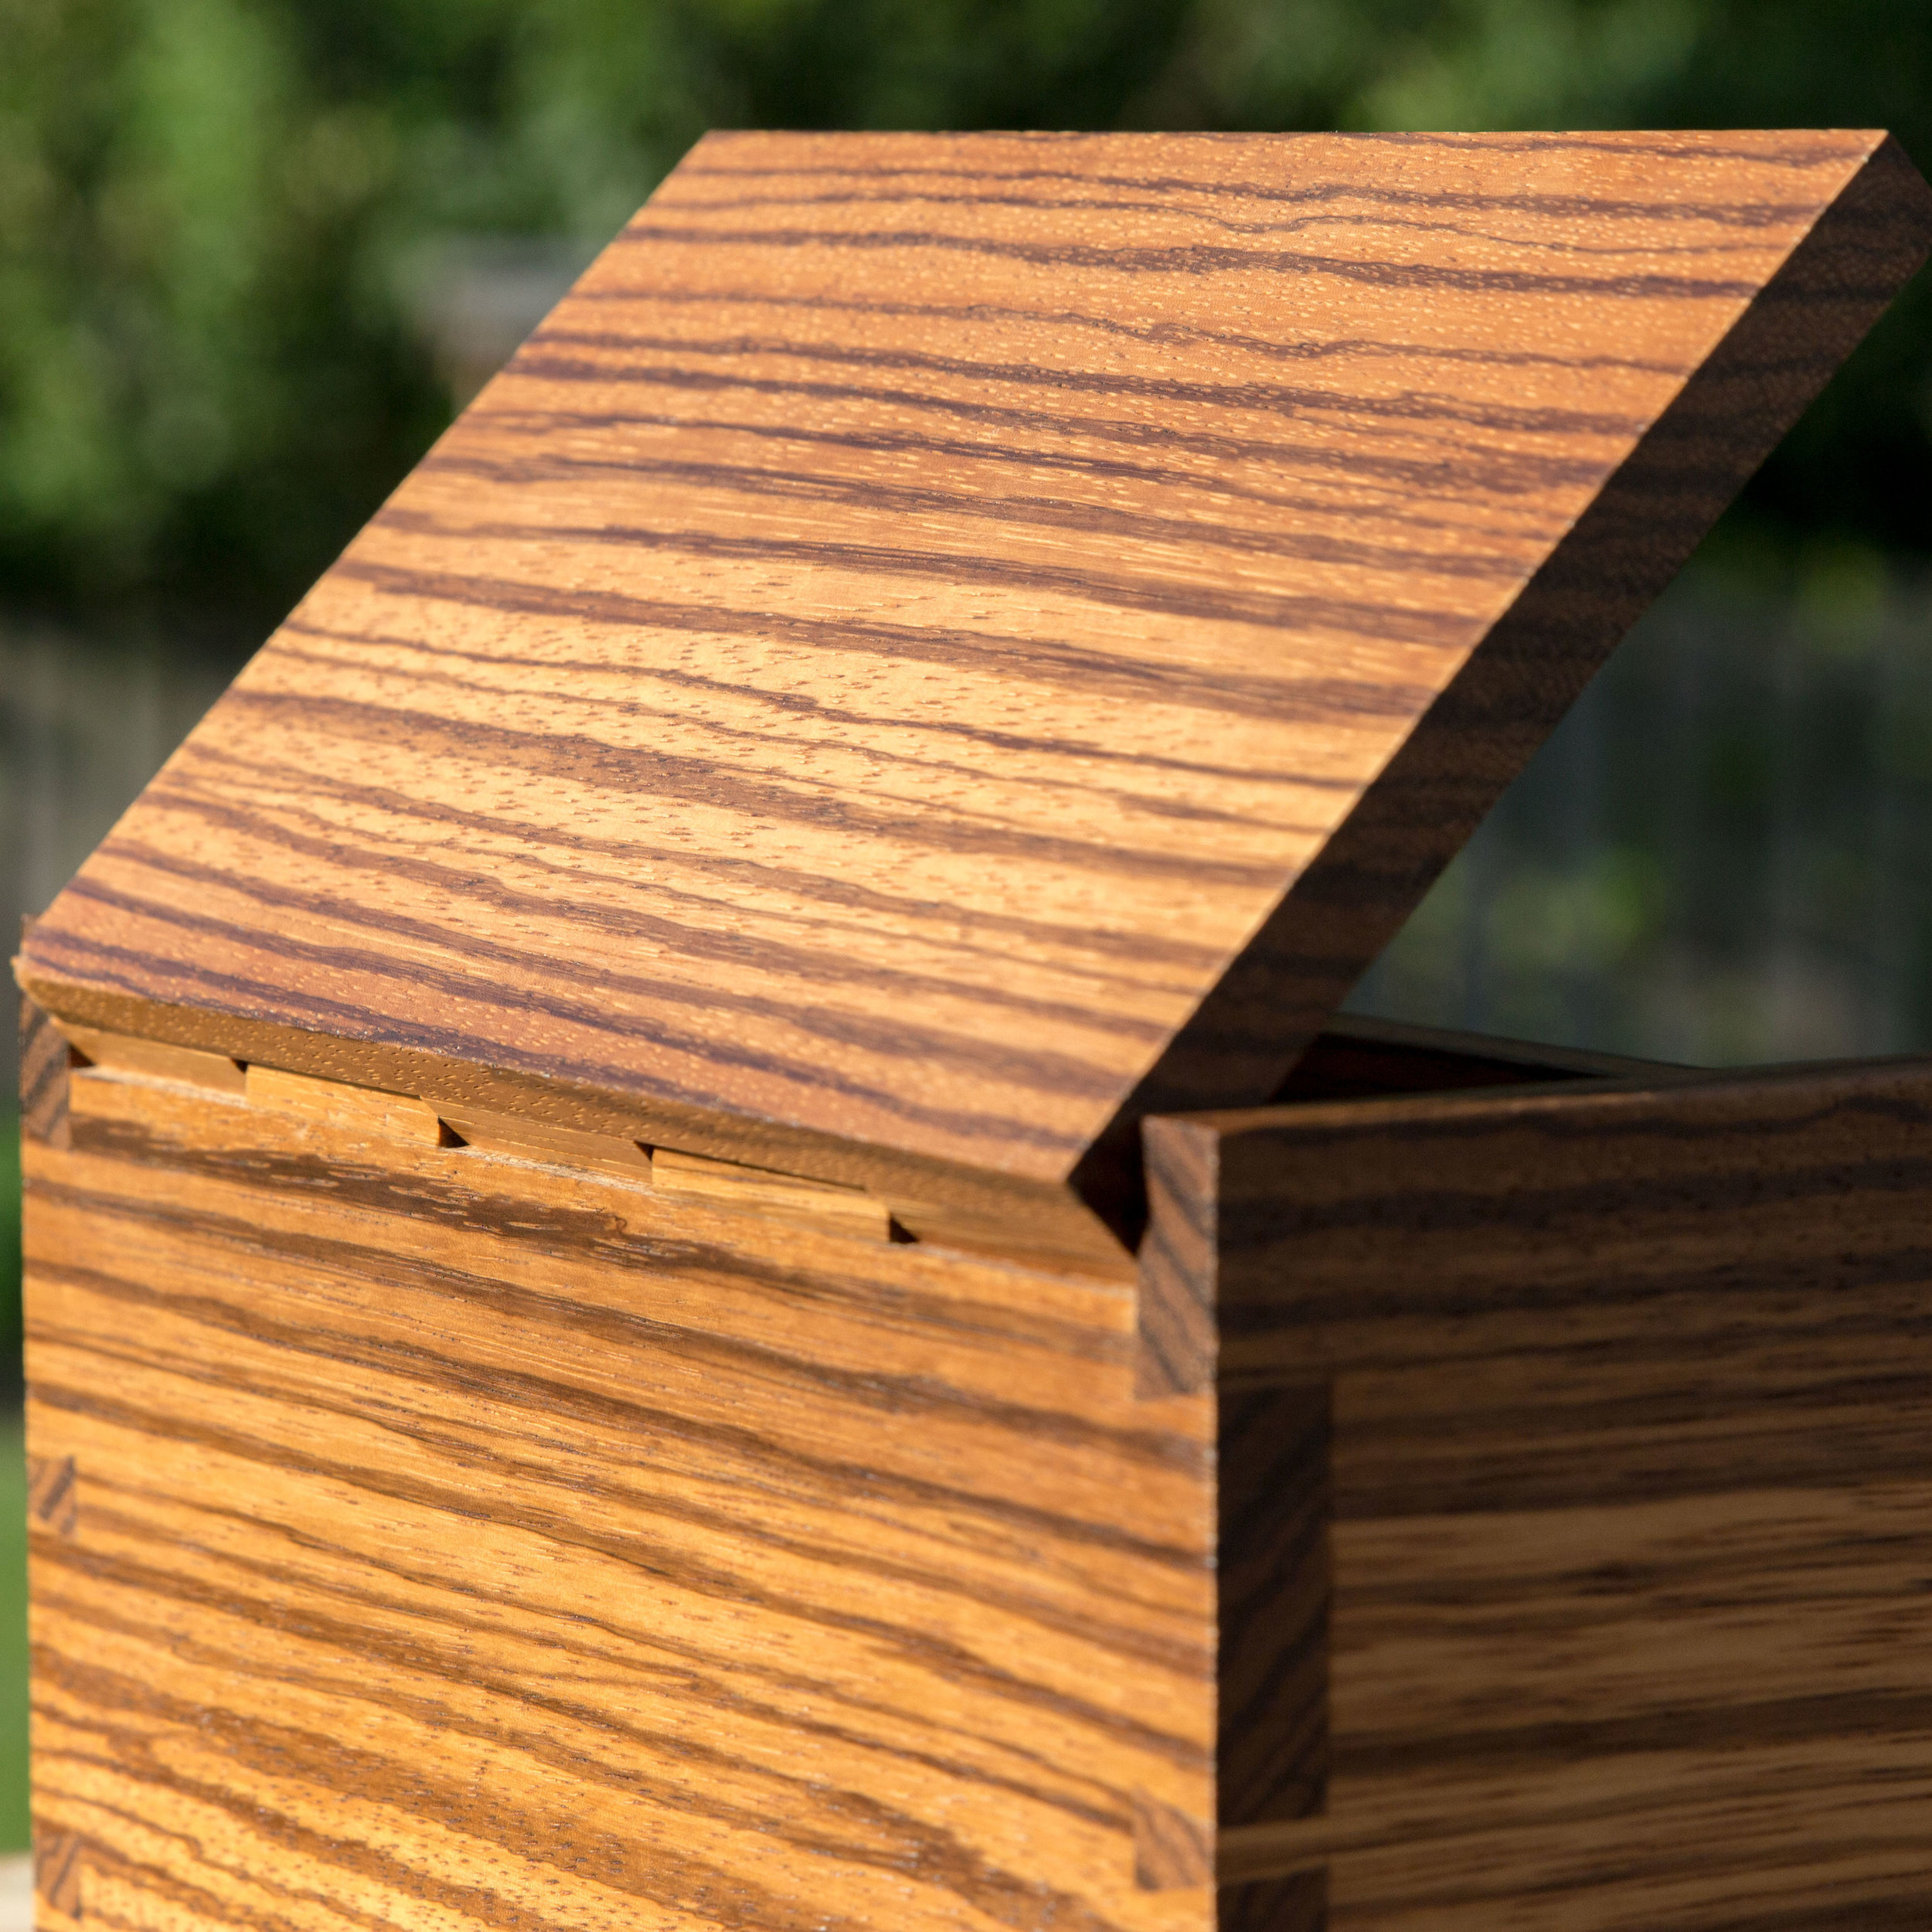 Handmade box by David Ryan Scott with all fitted joints. No screws or nails!